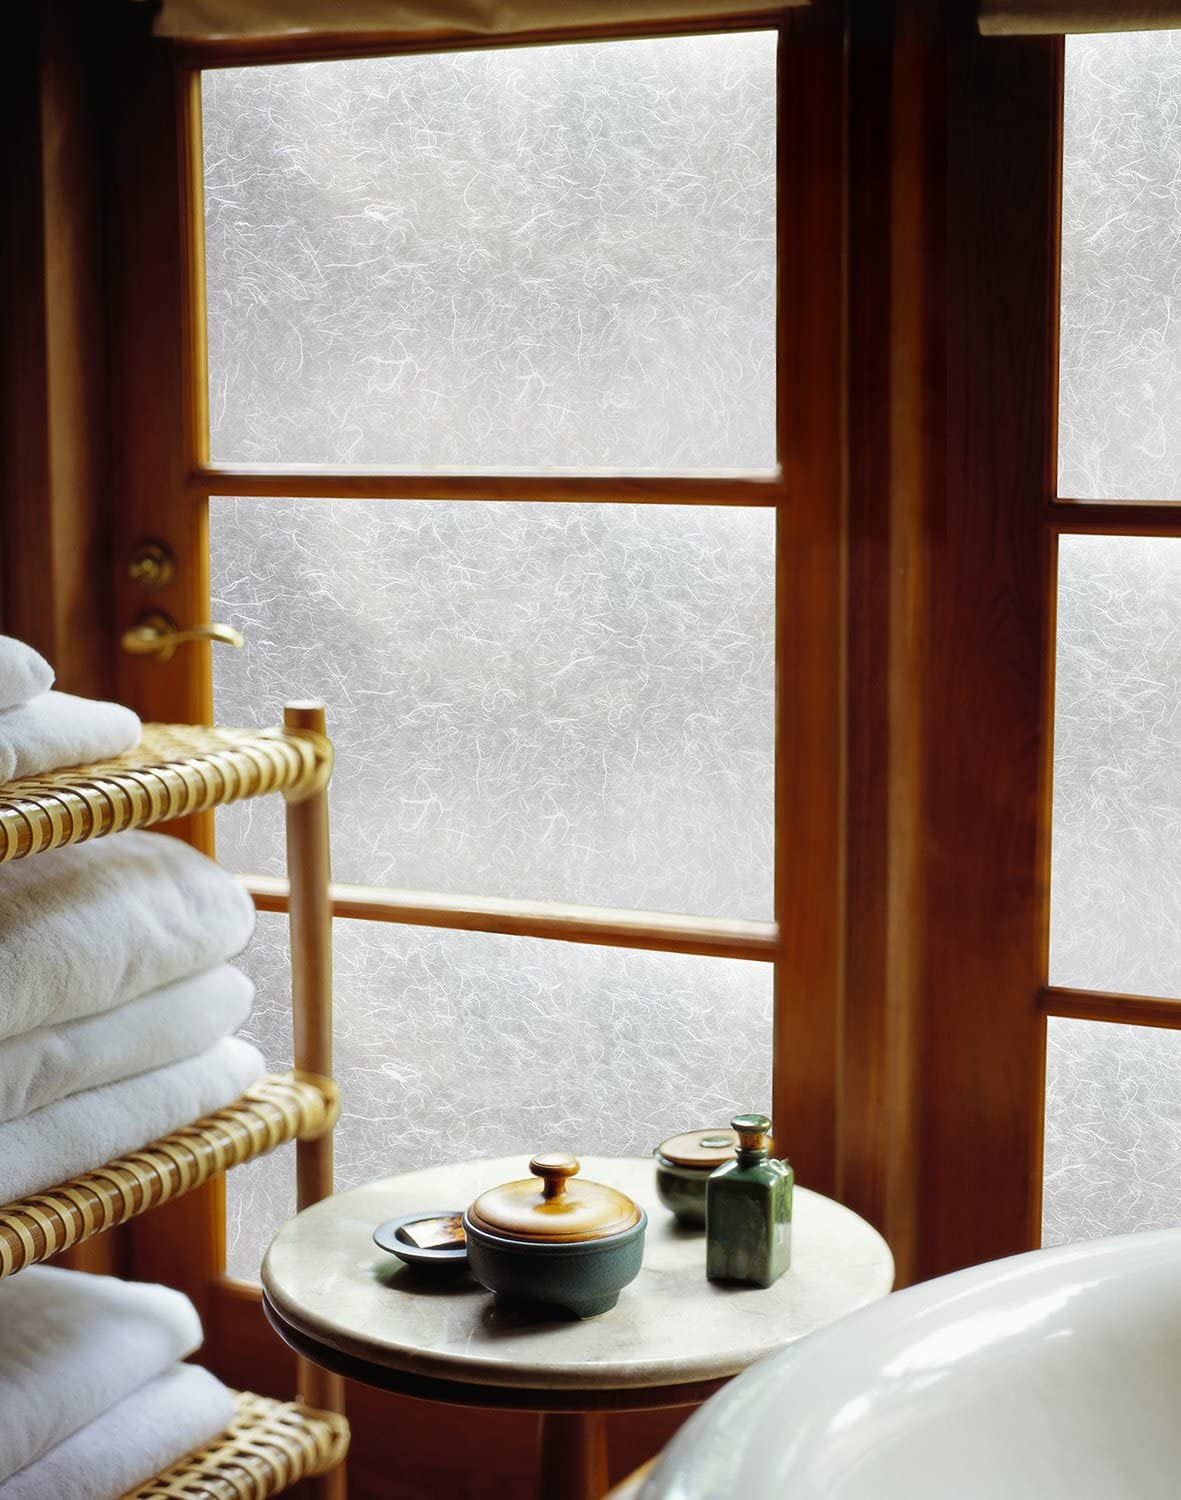 ARTSCAPE Rice Paper 36 in. x 72 in. Window Film, 36-by-72, Frosted